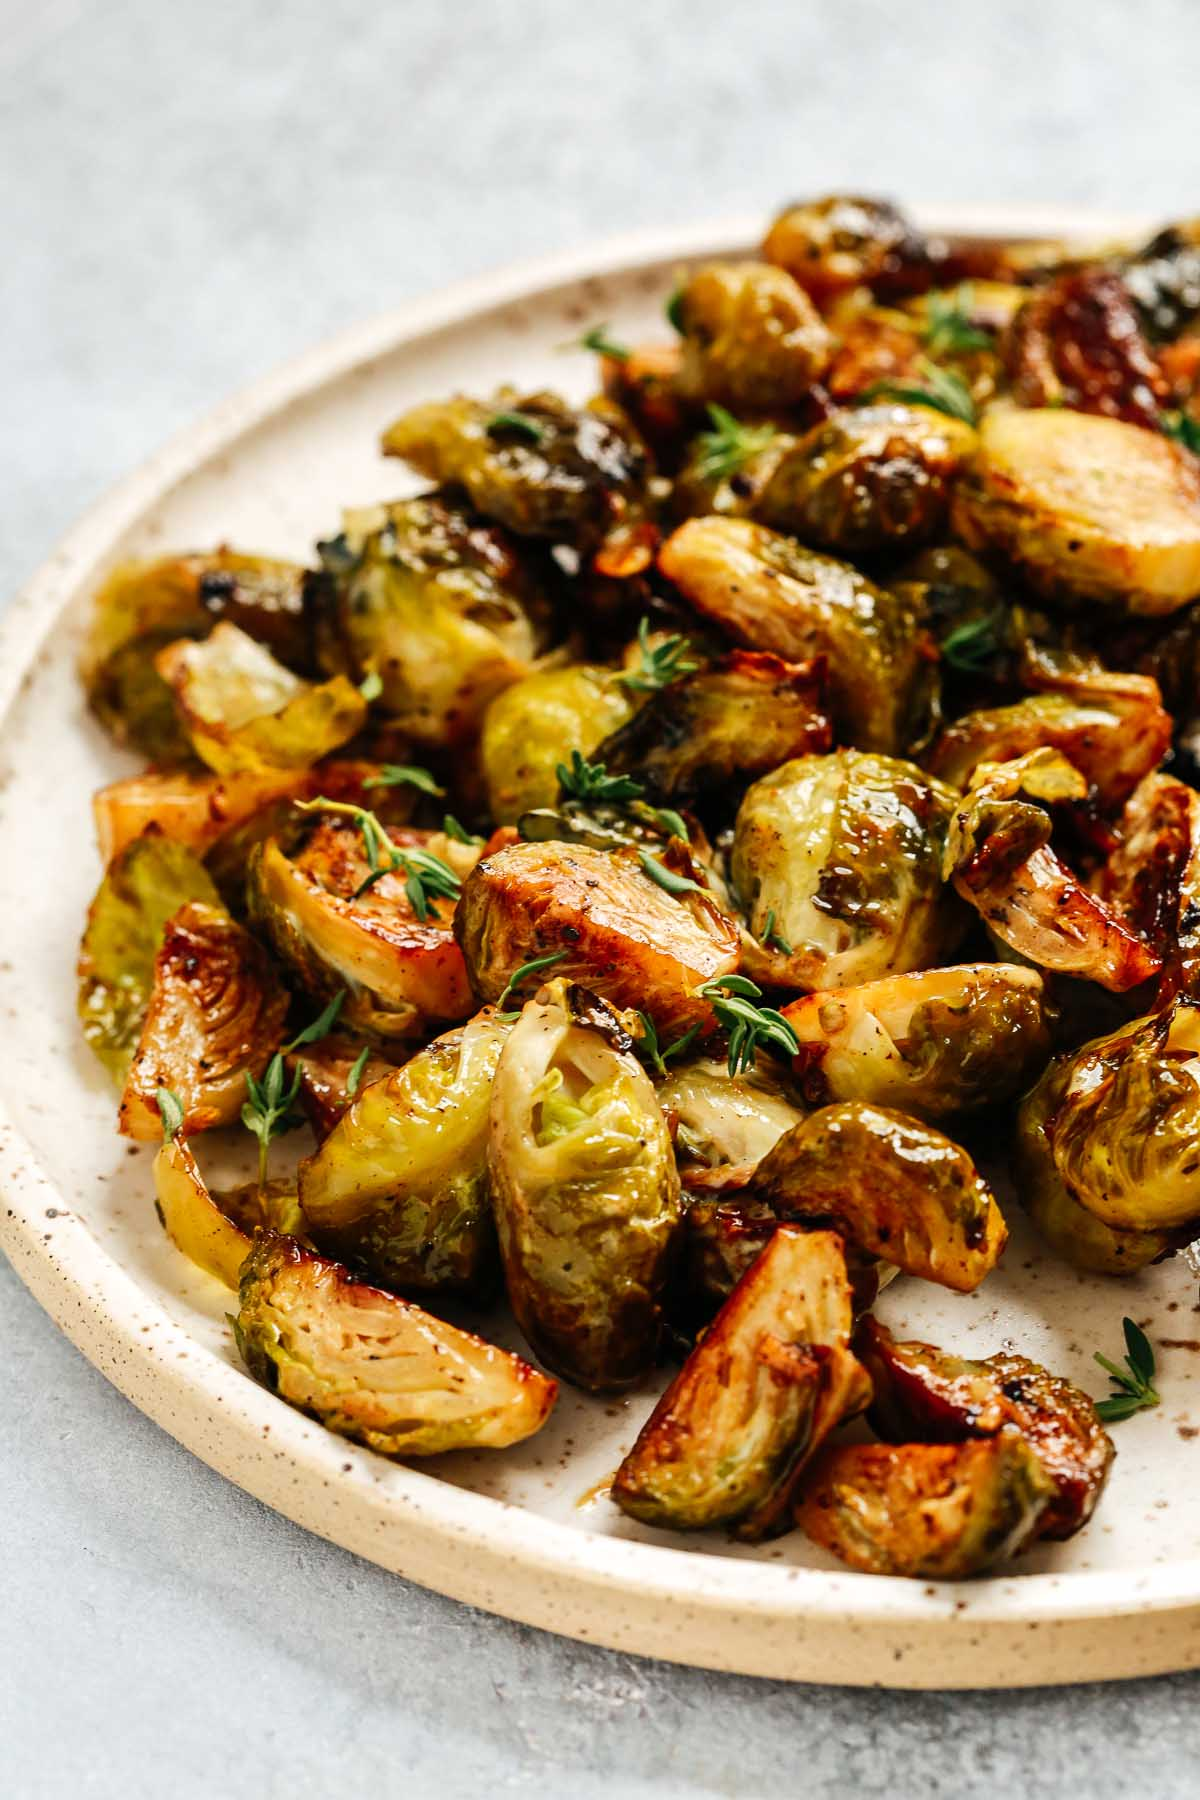 platter of golden roasted vegetables